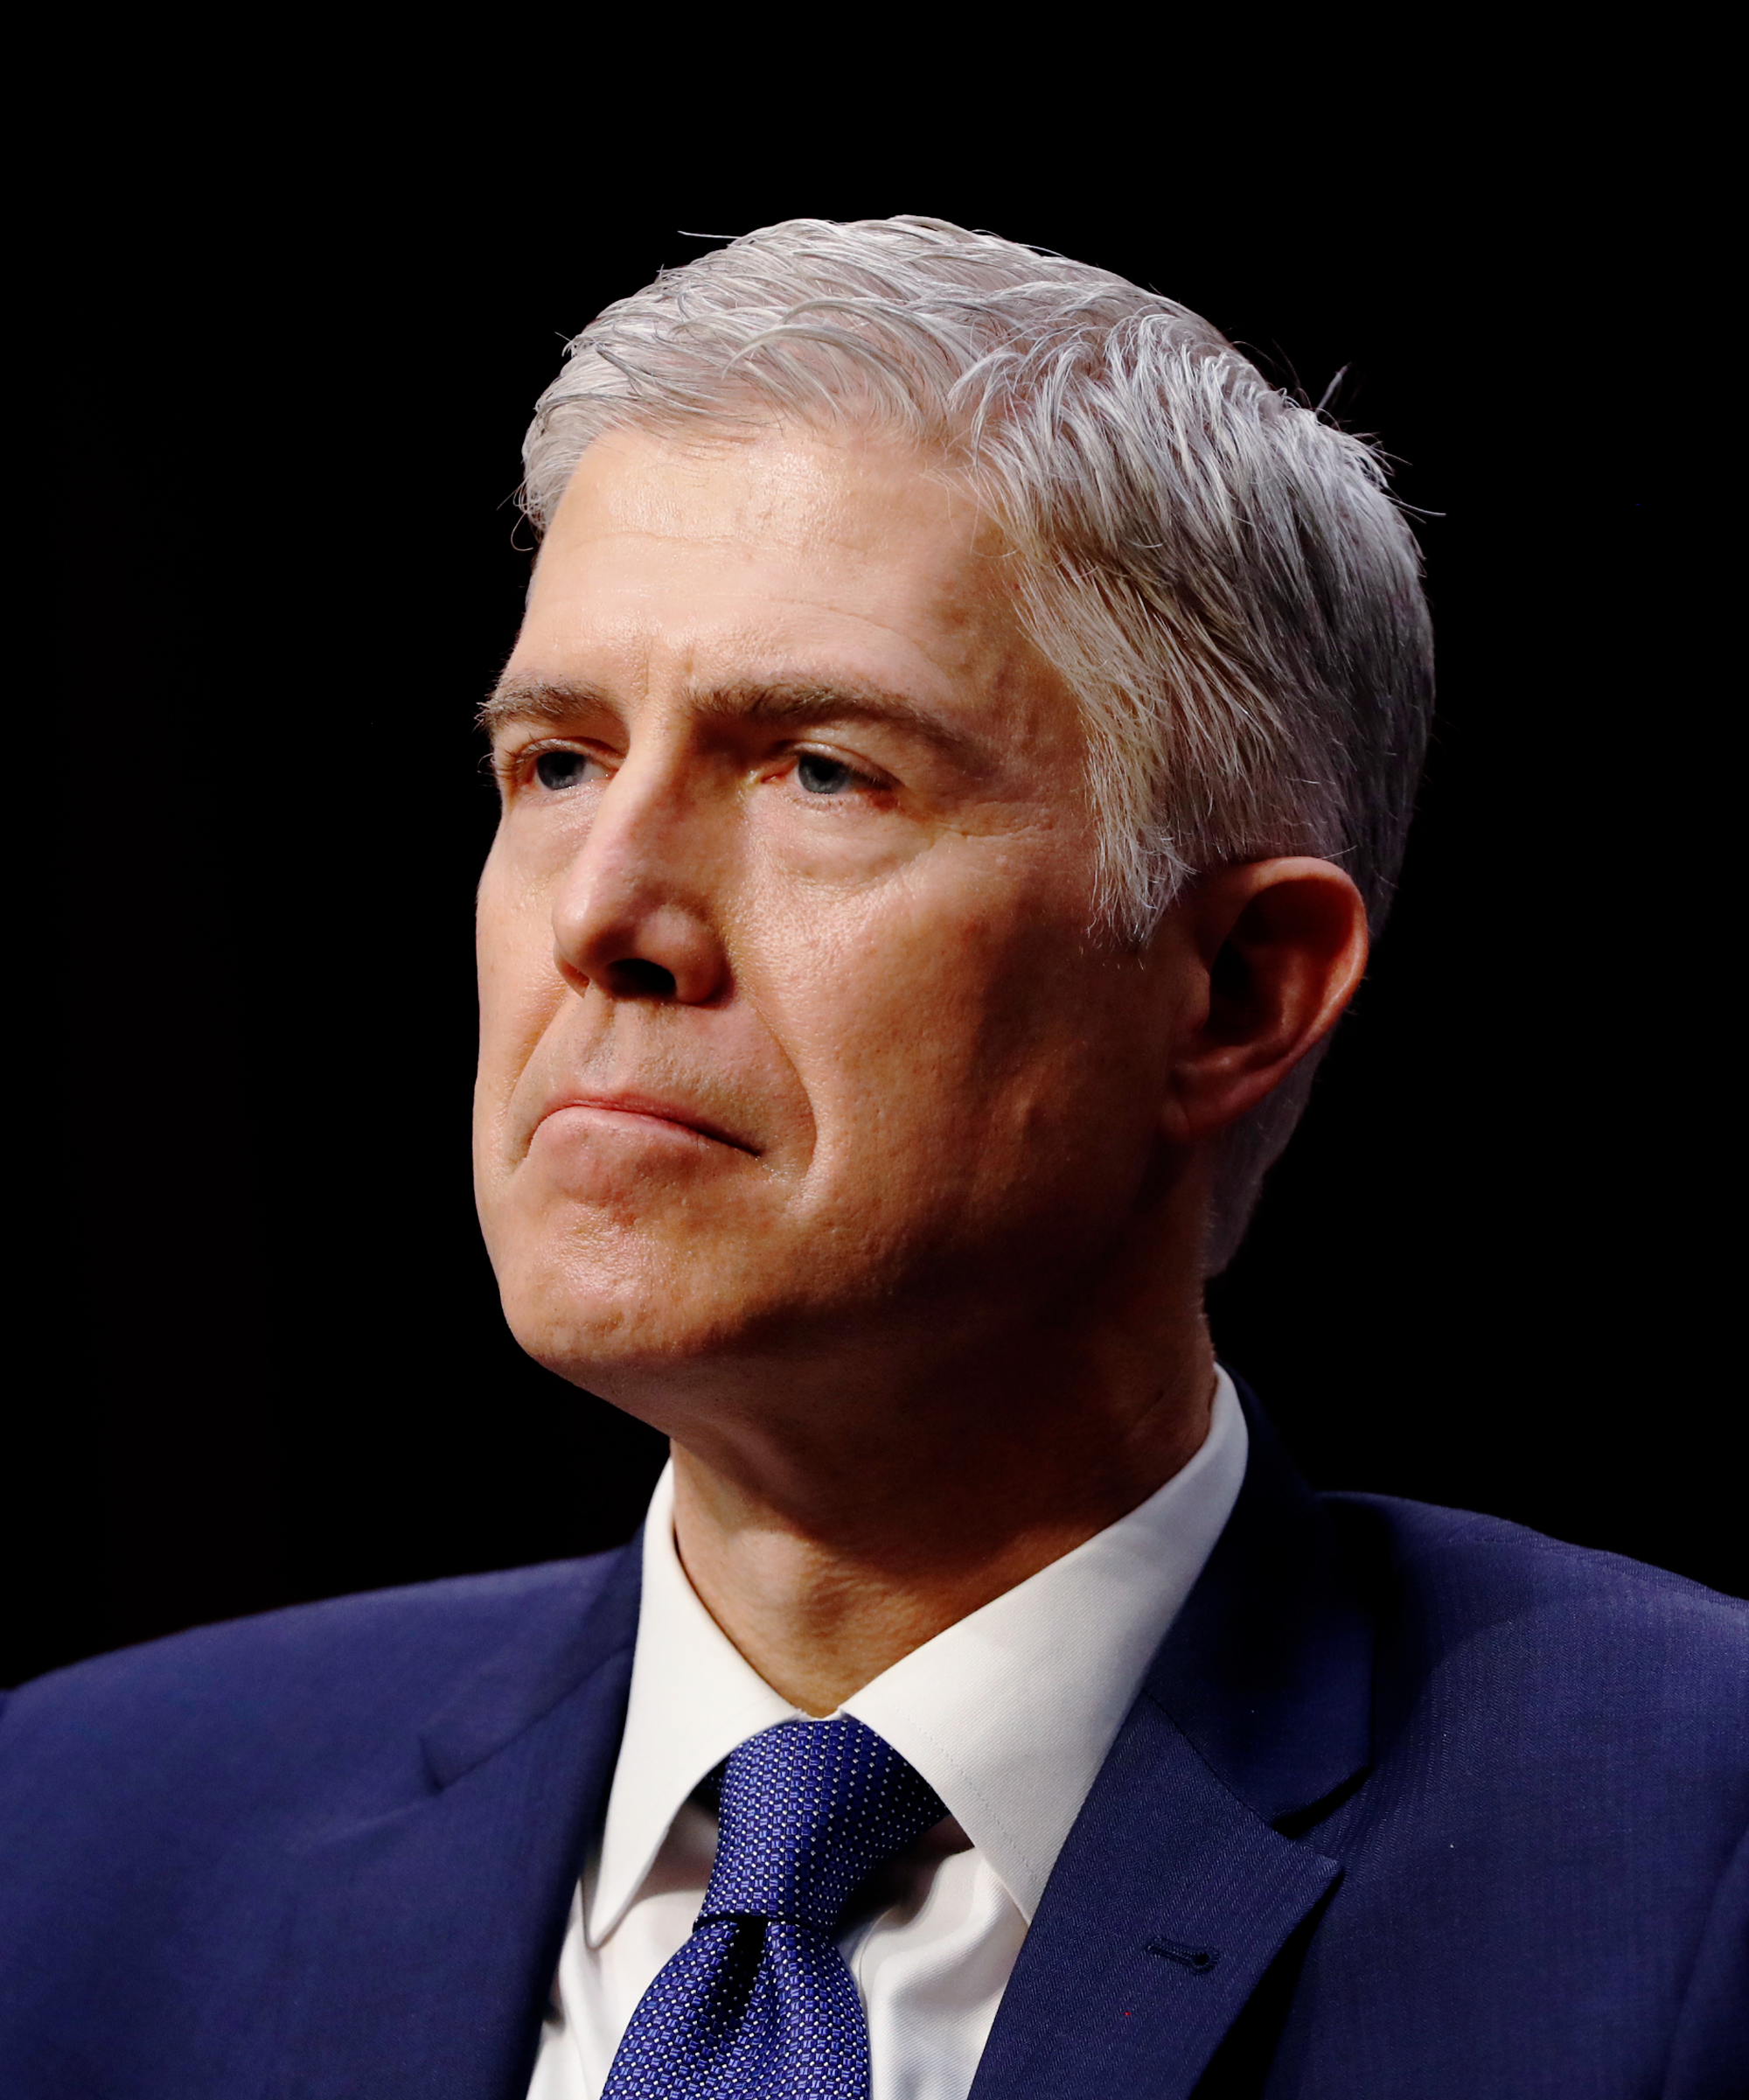 Gorsuch confirmed to Supreme Court. Conservatives: 'Thanks Harry Reid'